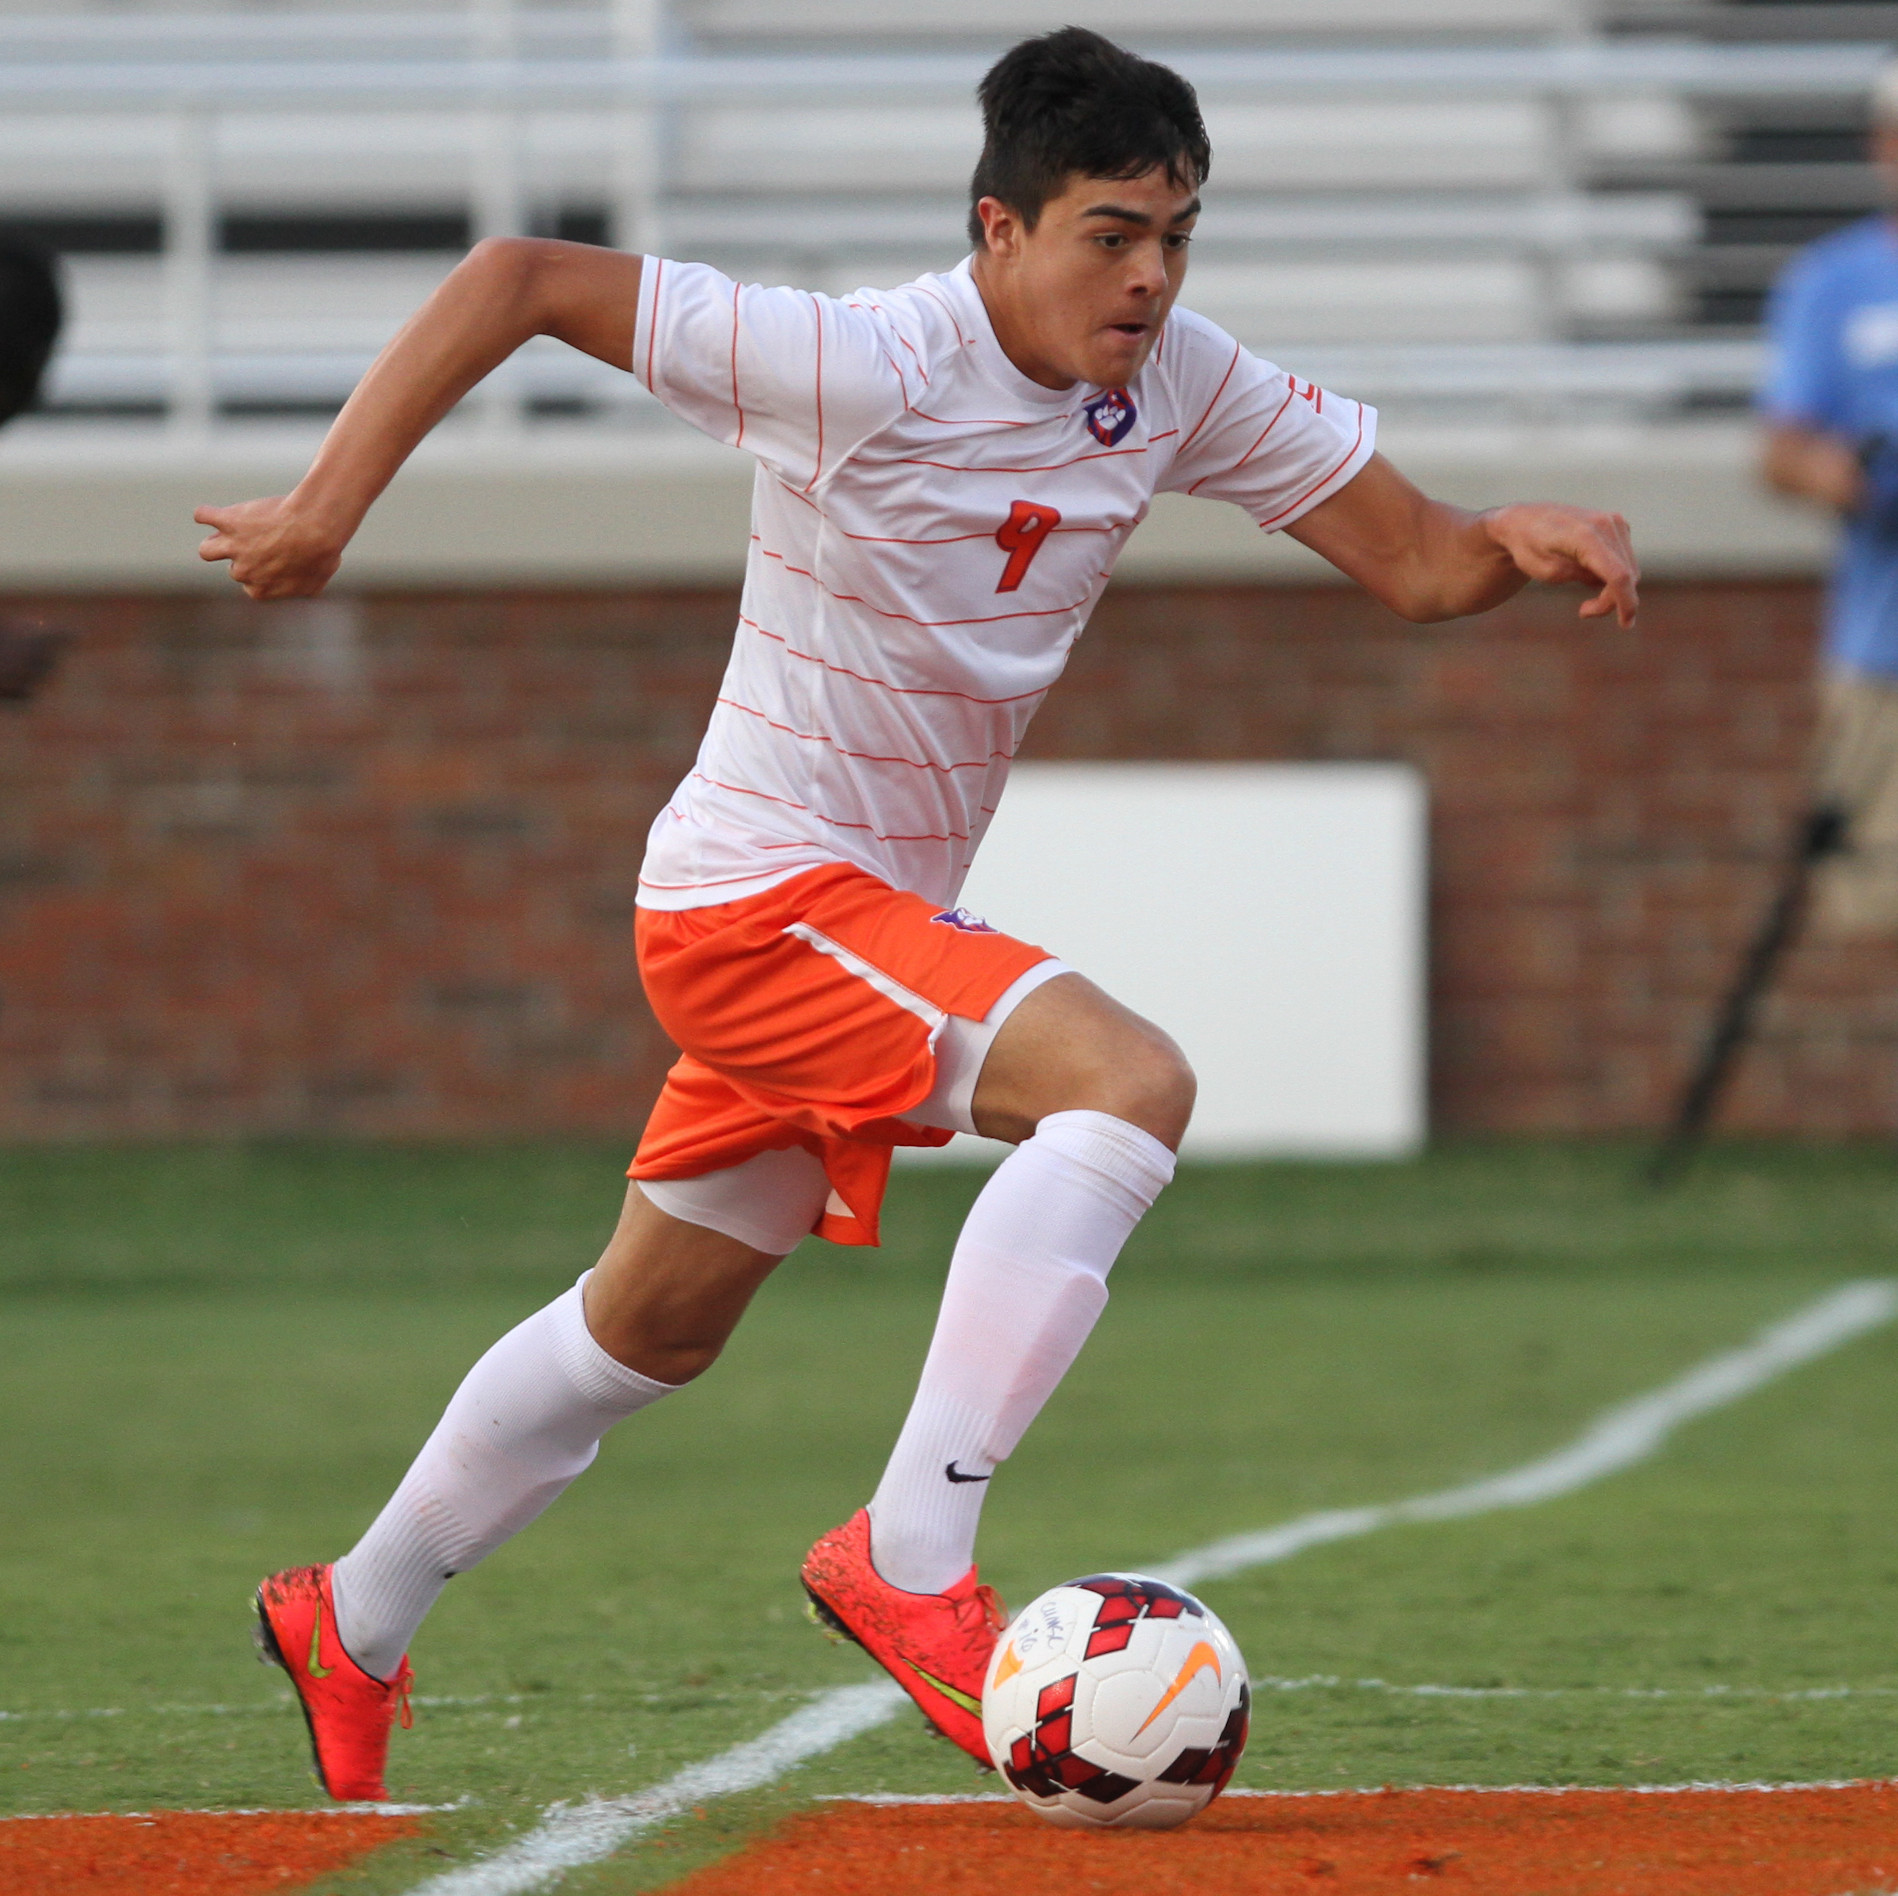 Clemson Falls to No. 9 North Carolina 3-2 in Double Overtime Friday Night in Chapel Hill